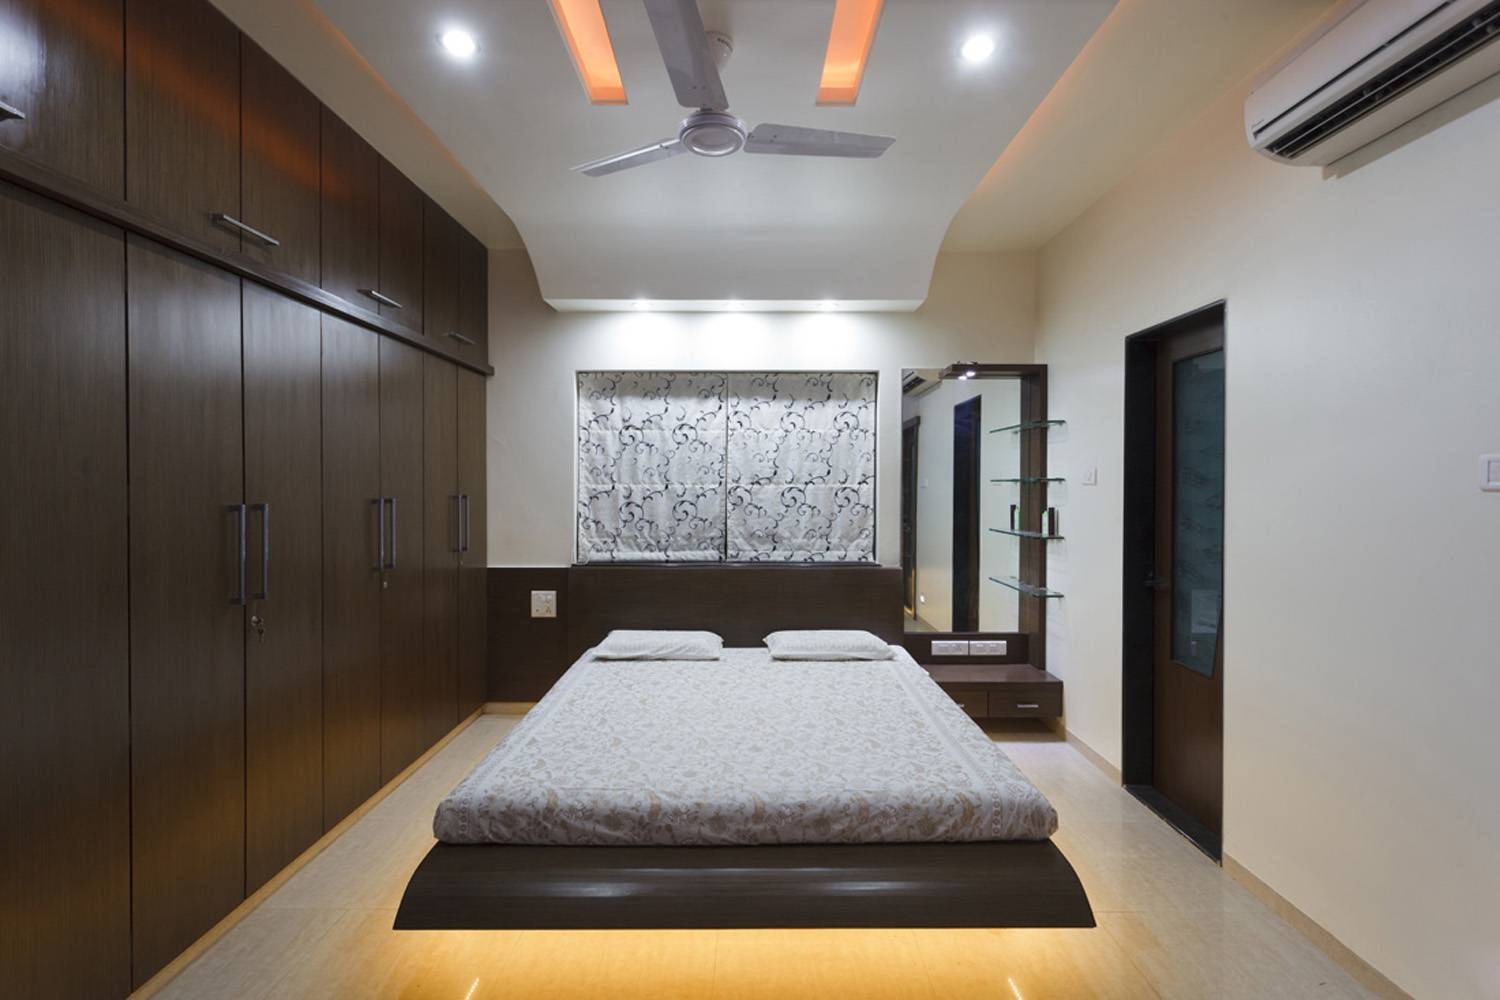 Bed room interior design portfolio leading interior Room design site